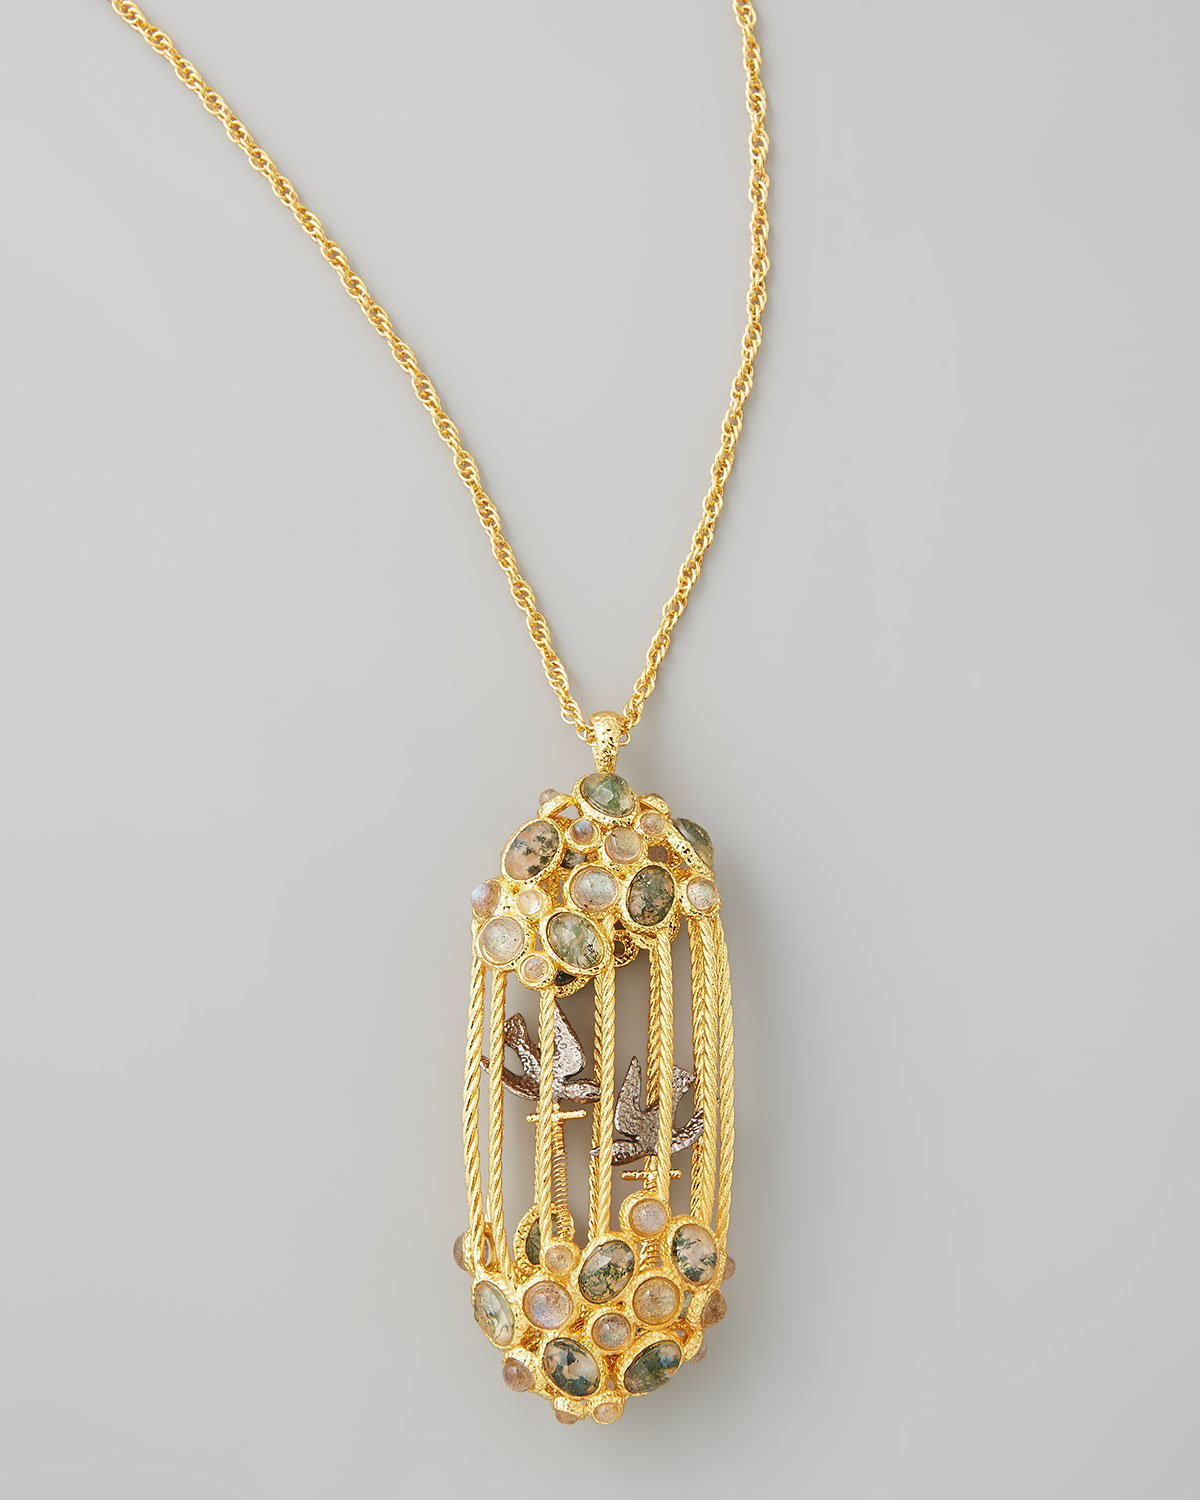 Lyst alexis bittar sanctuary bird cage pendant necklace in metallic gallery mozeypictures Image collections